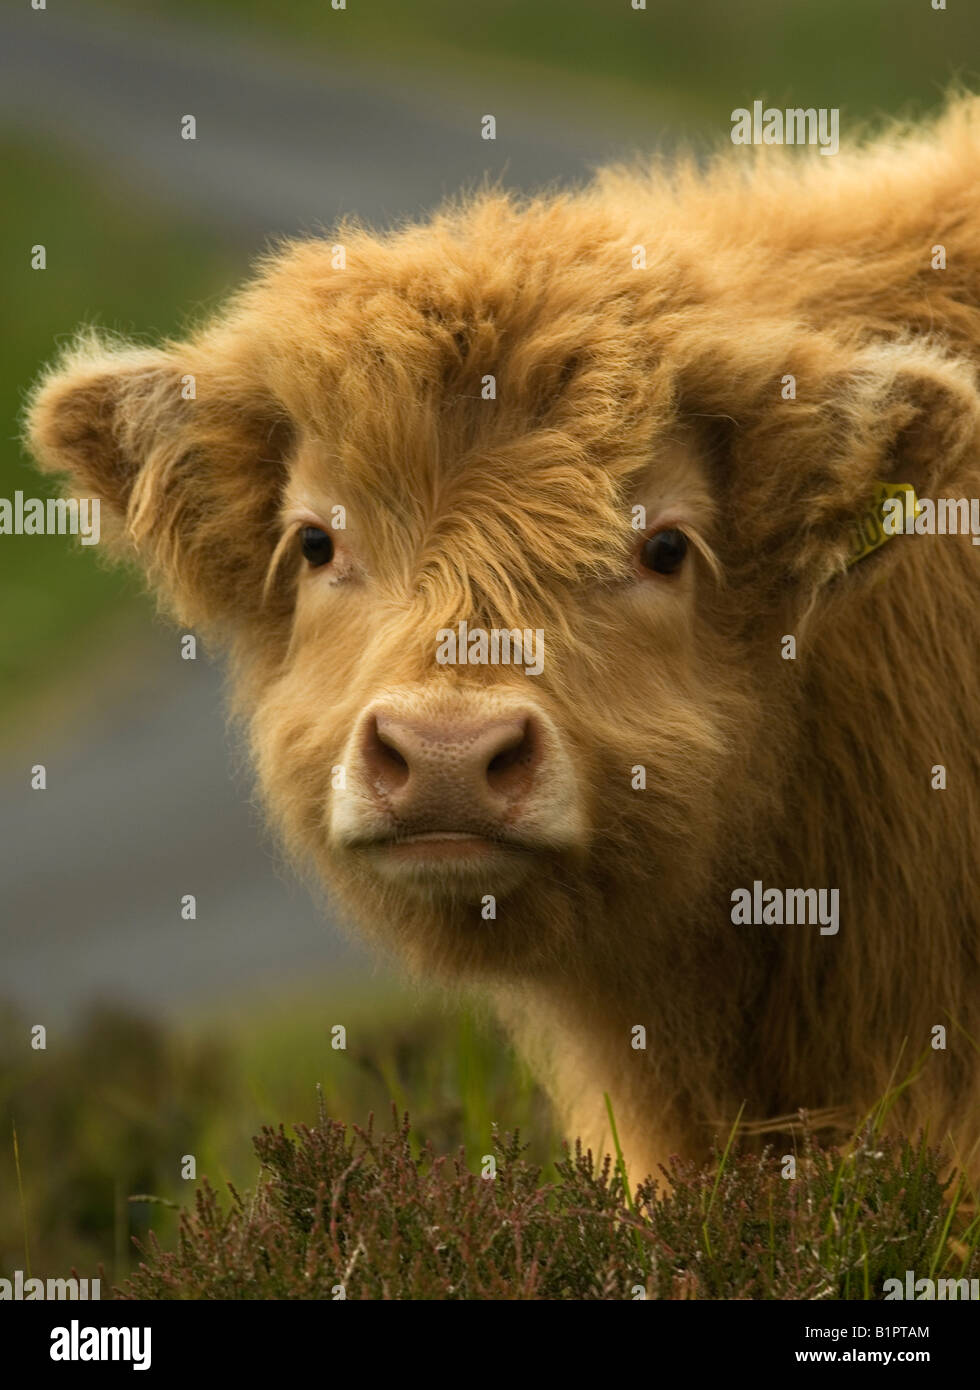 headshot of a young highland cow calf stock photo royalty free